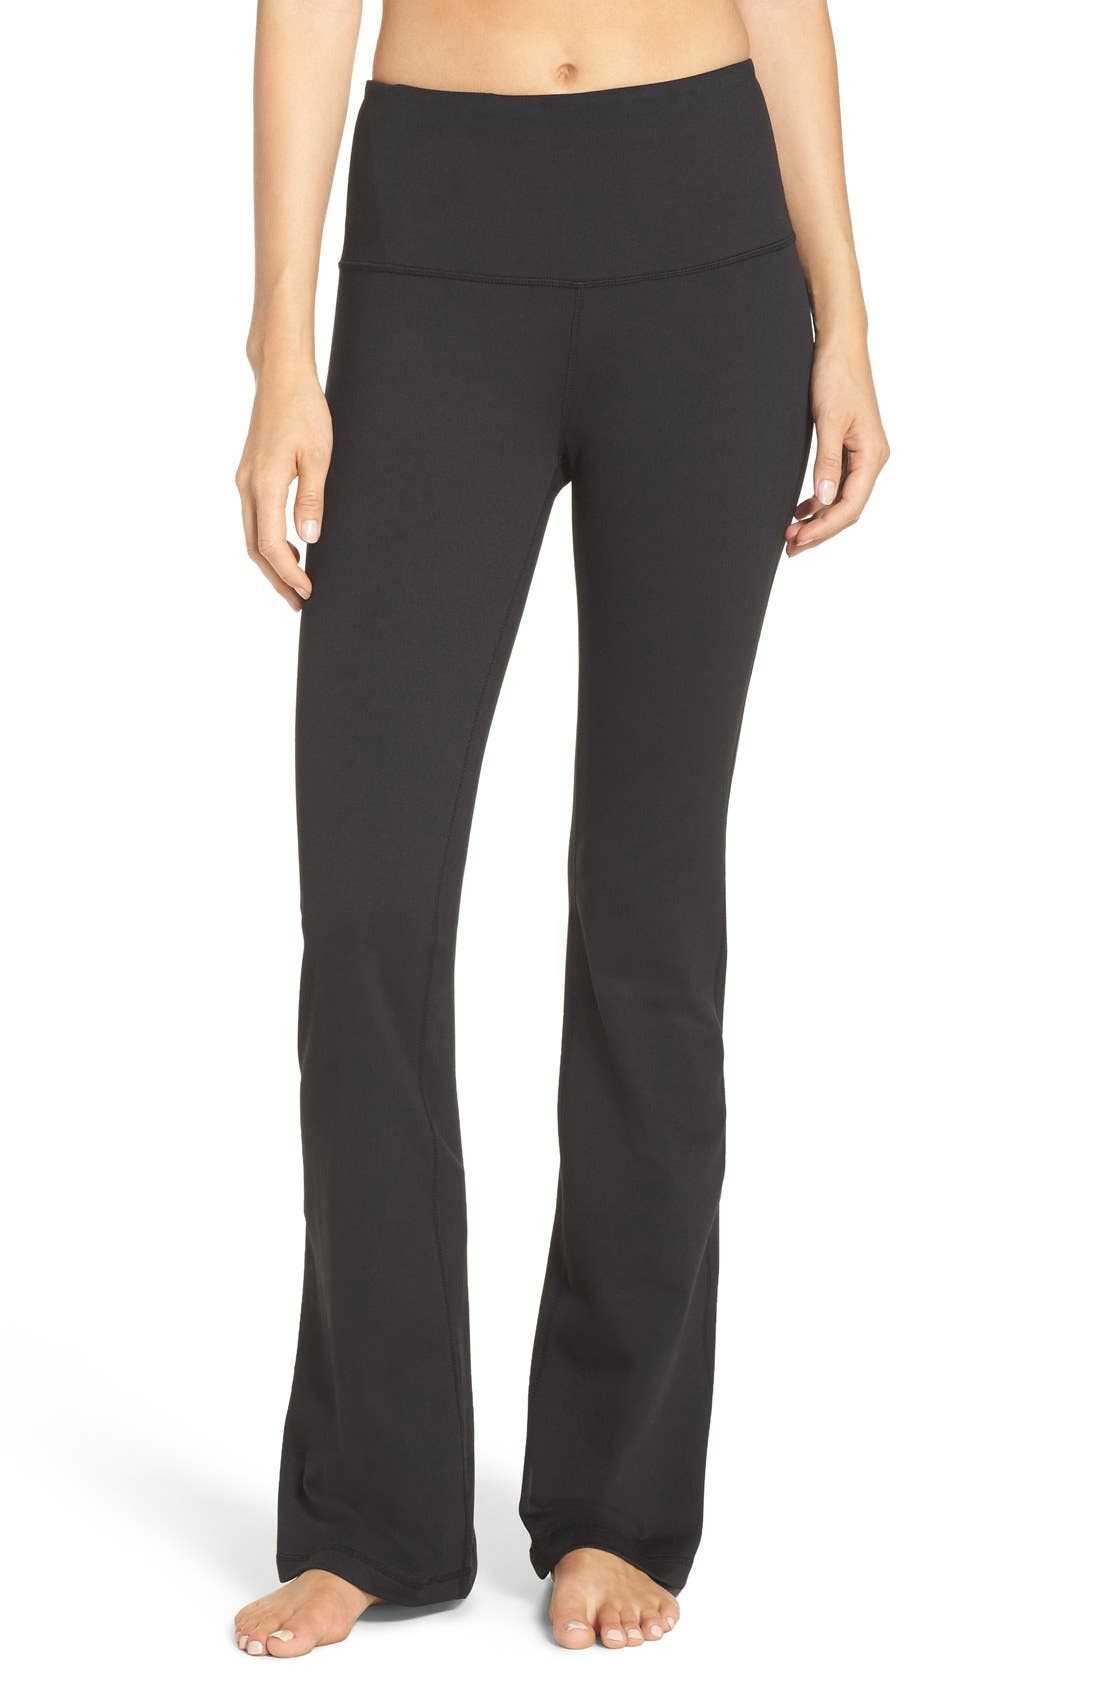 ZELLA Barely Flare Live in High Waist Pants, Main, color, BLACK